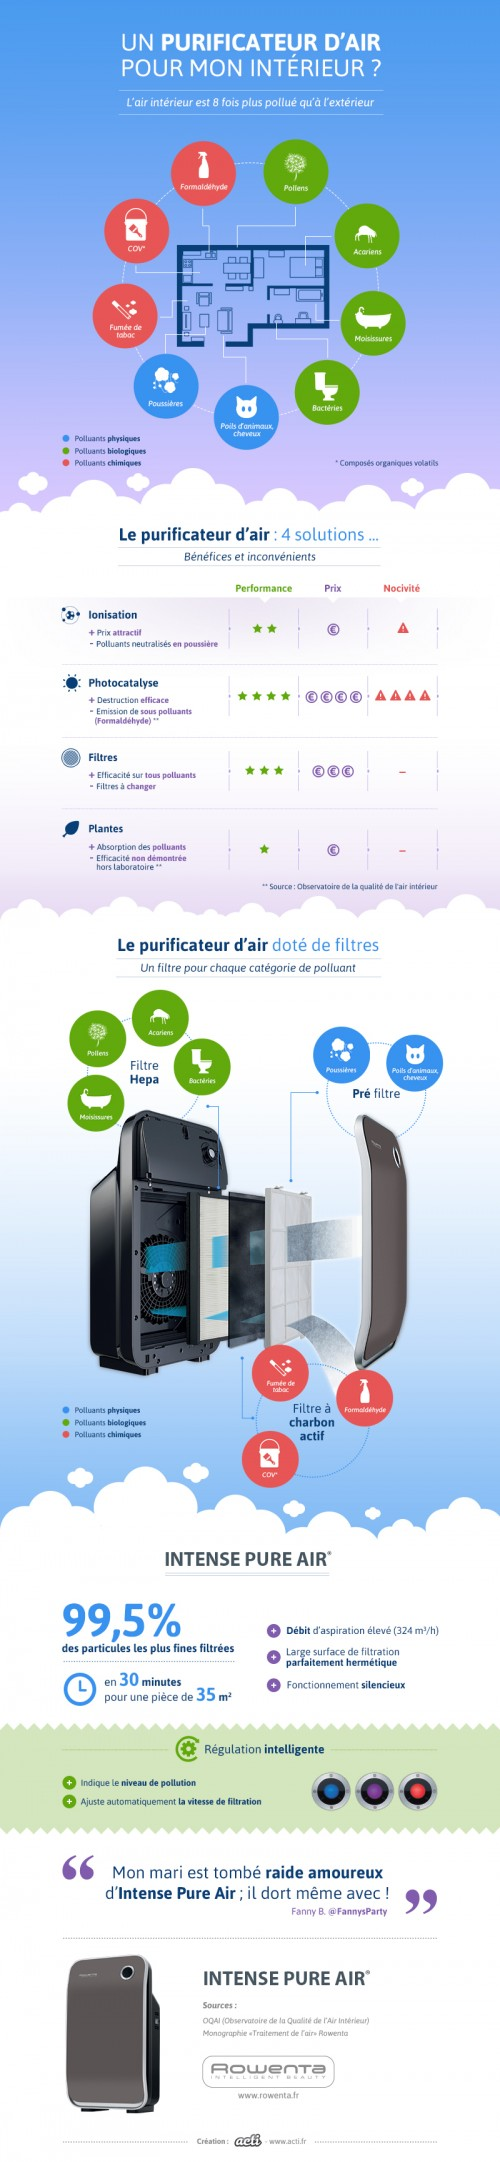 Rowenta-infographie-purificateurs